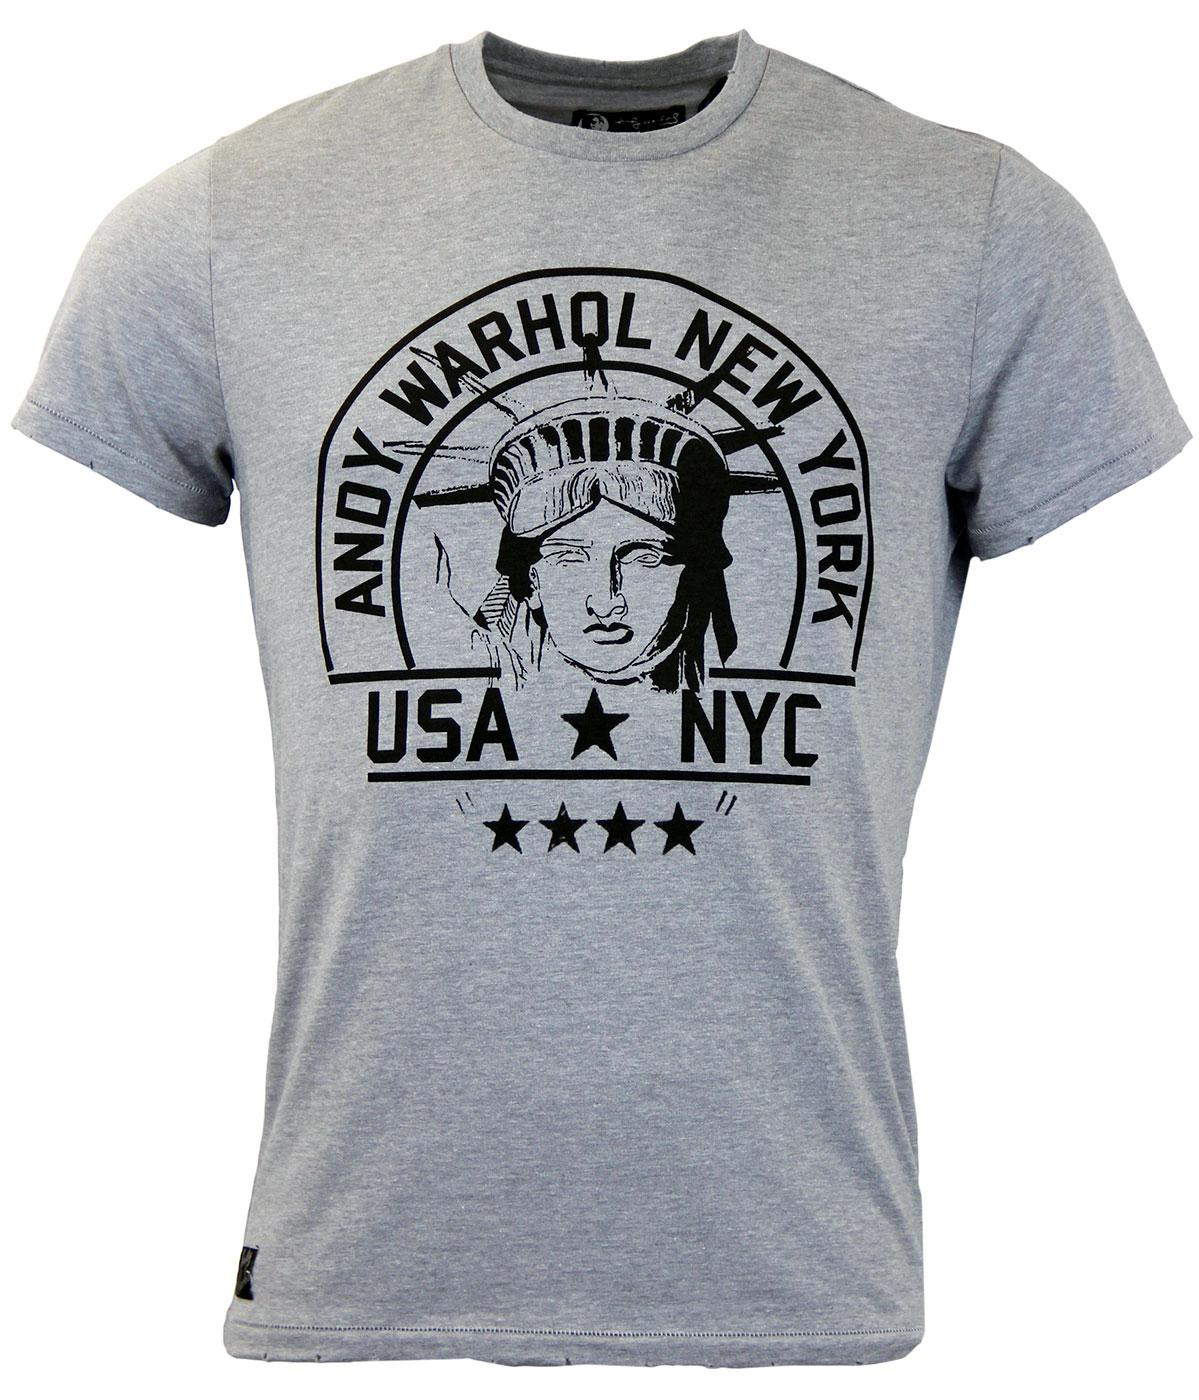 Giant ANDY WARHOL PEPE JEANS Statue of Liberty Tee